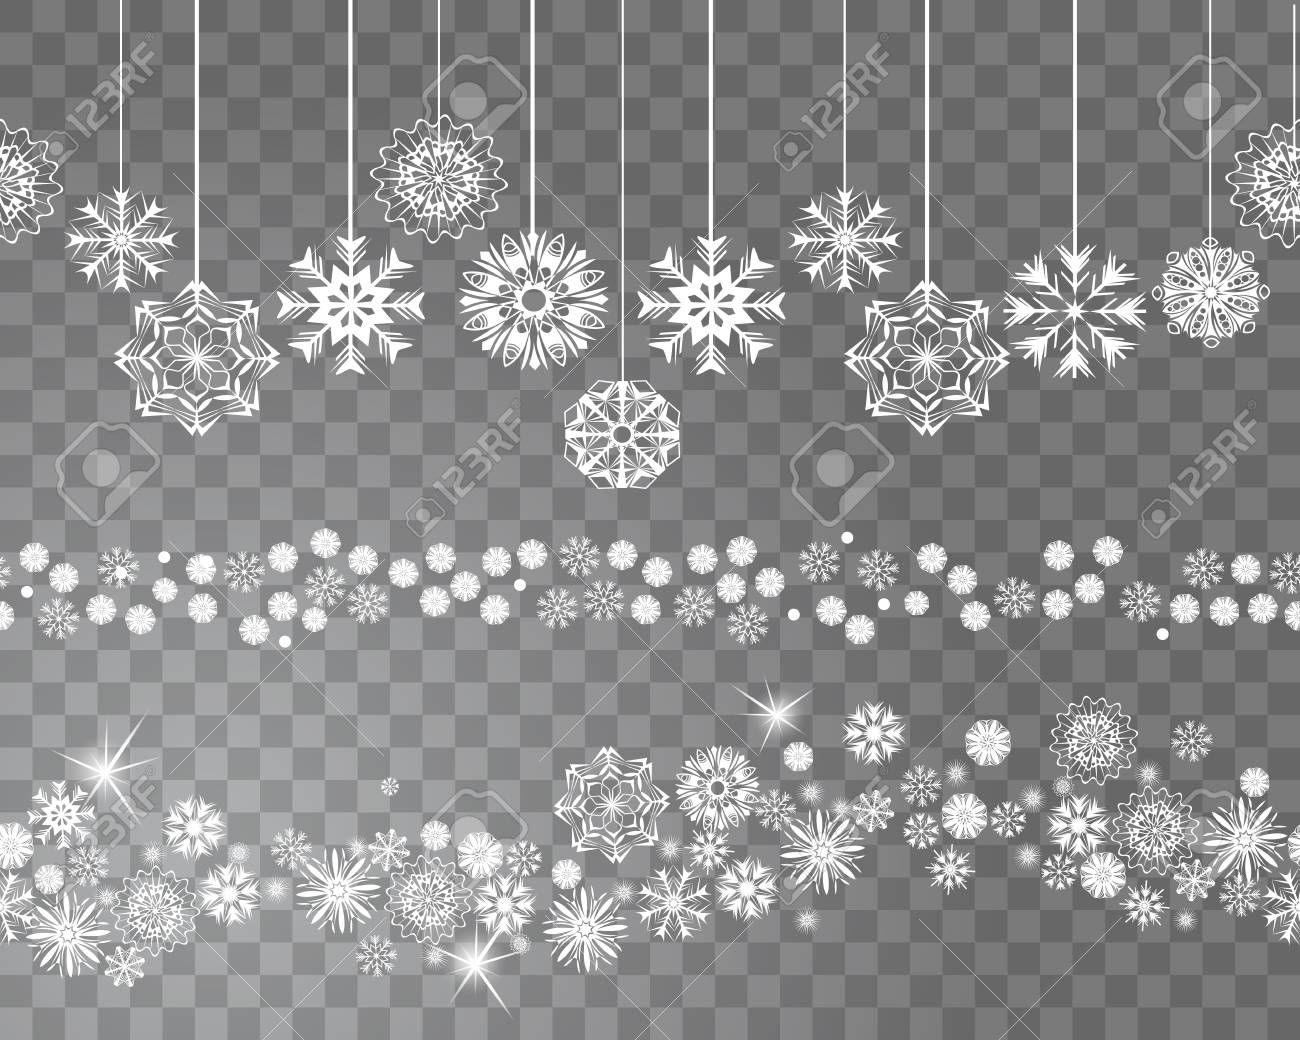 Snowflake, beautiful snowflake border transparent background PNG clipart |  HiClipart